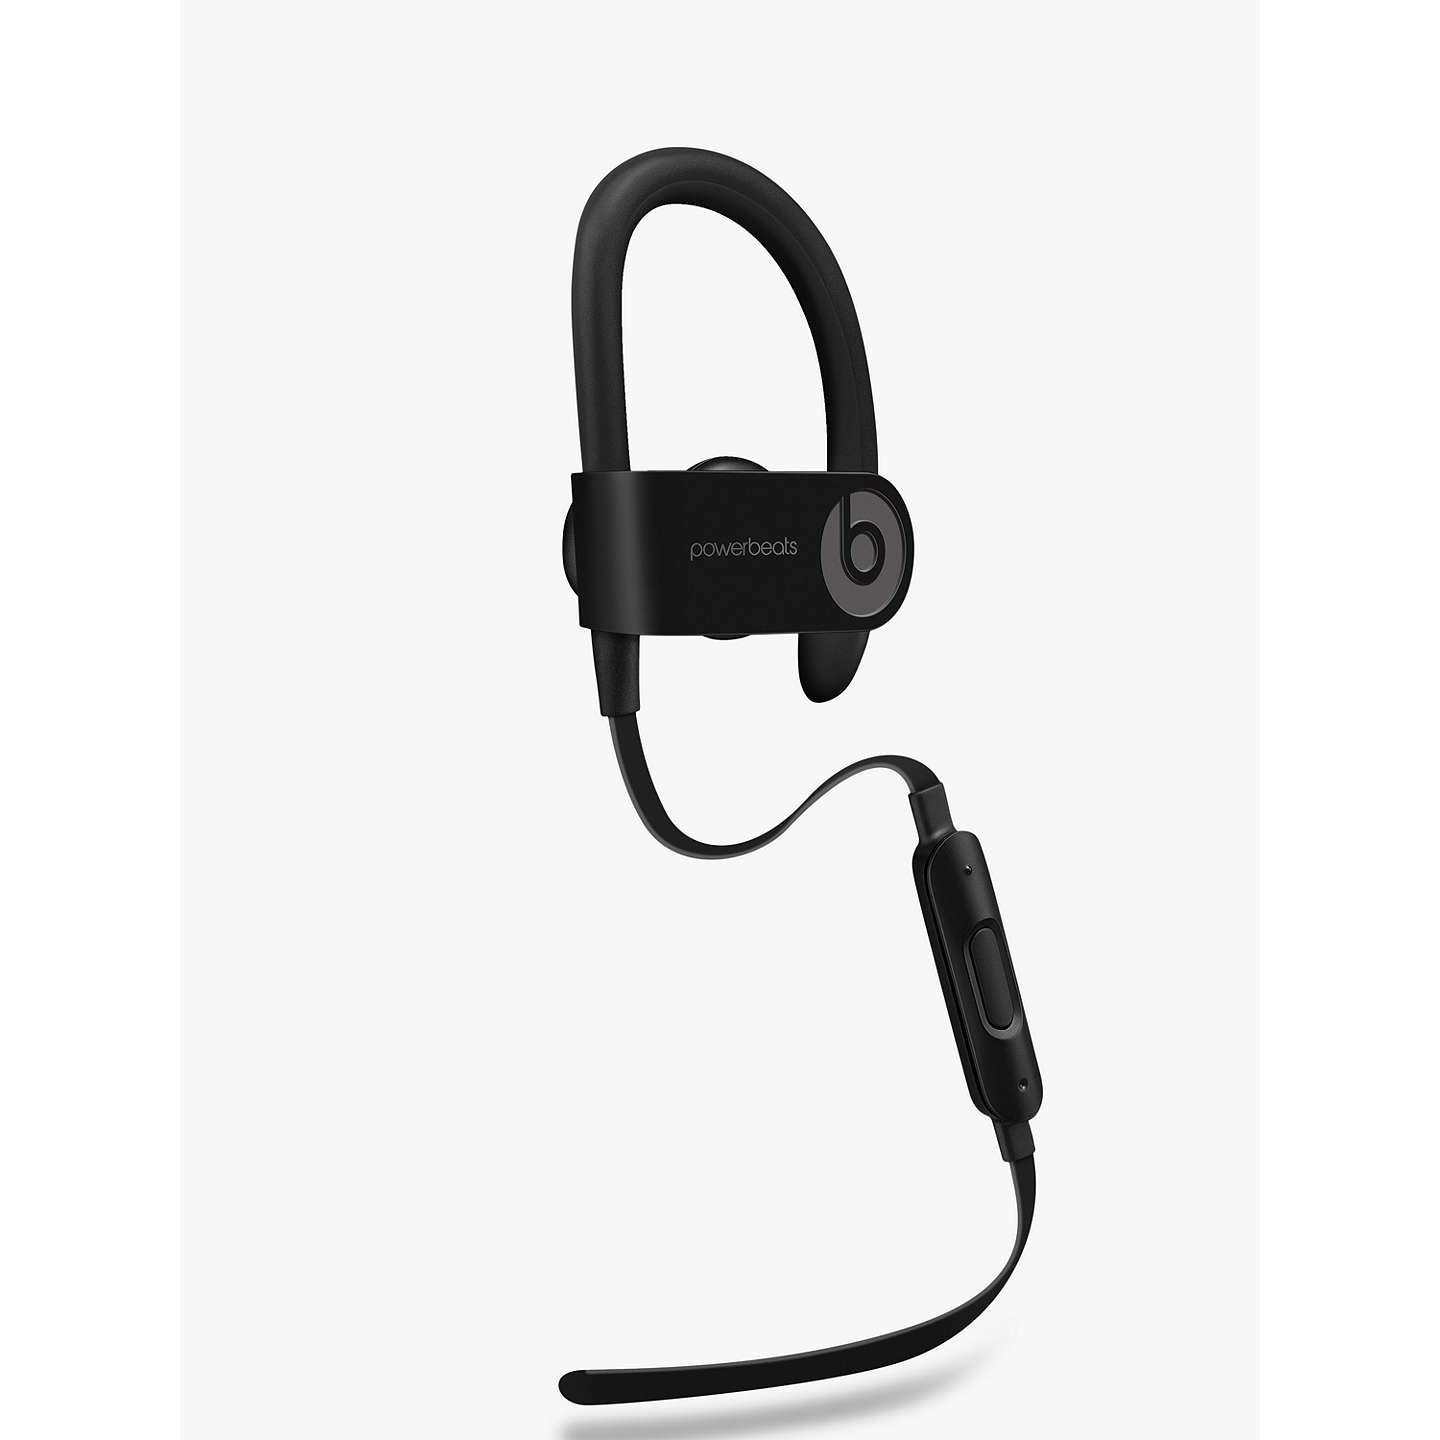 BuyPowerbeats³ Wireless Bluetooth In-Ear Sport Headphones with Mic/Remote, Black Online at johnlewis.com